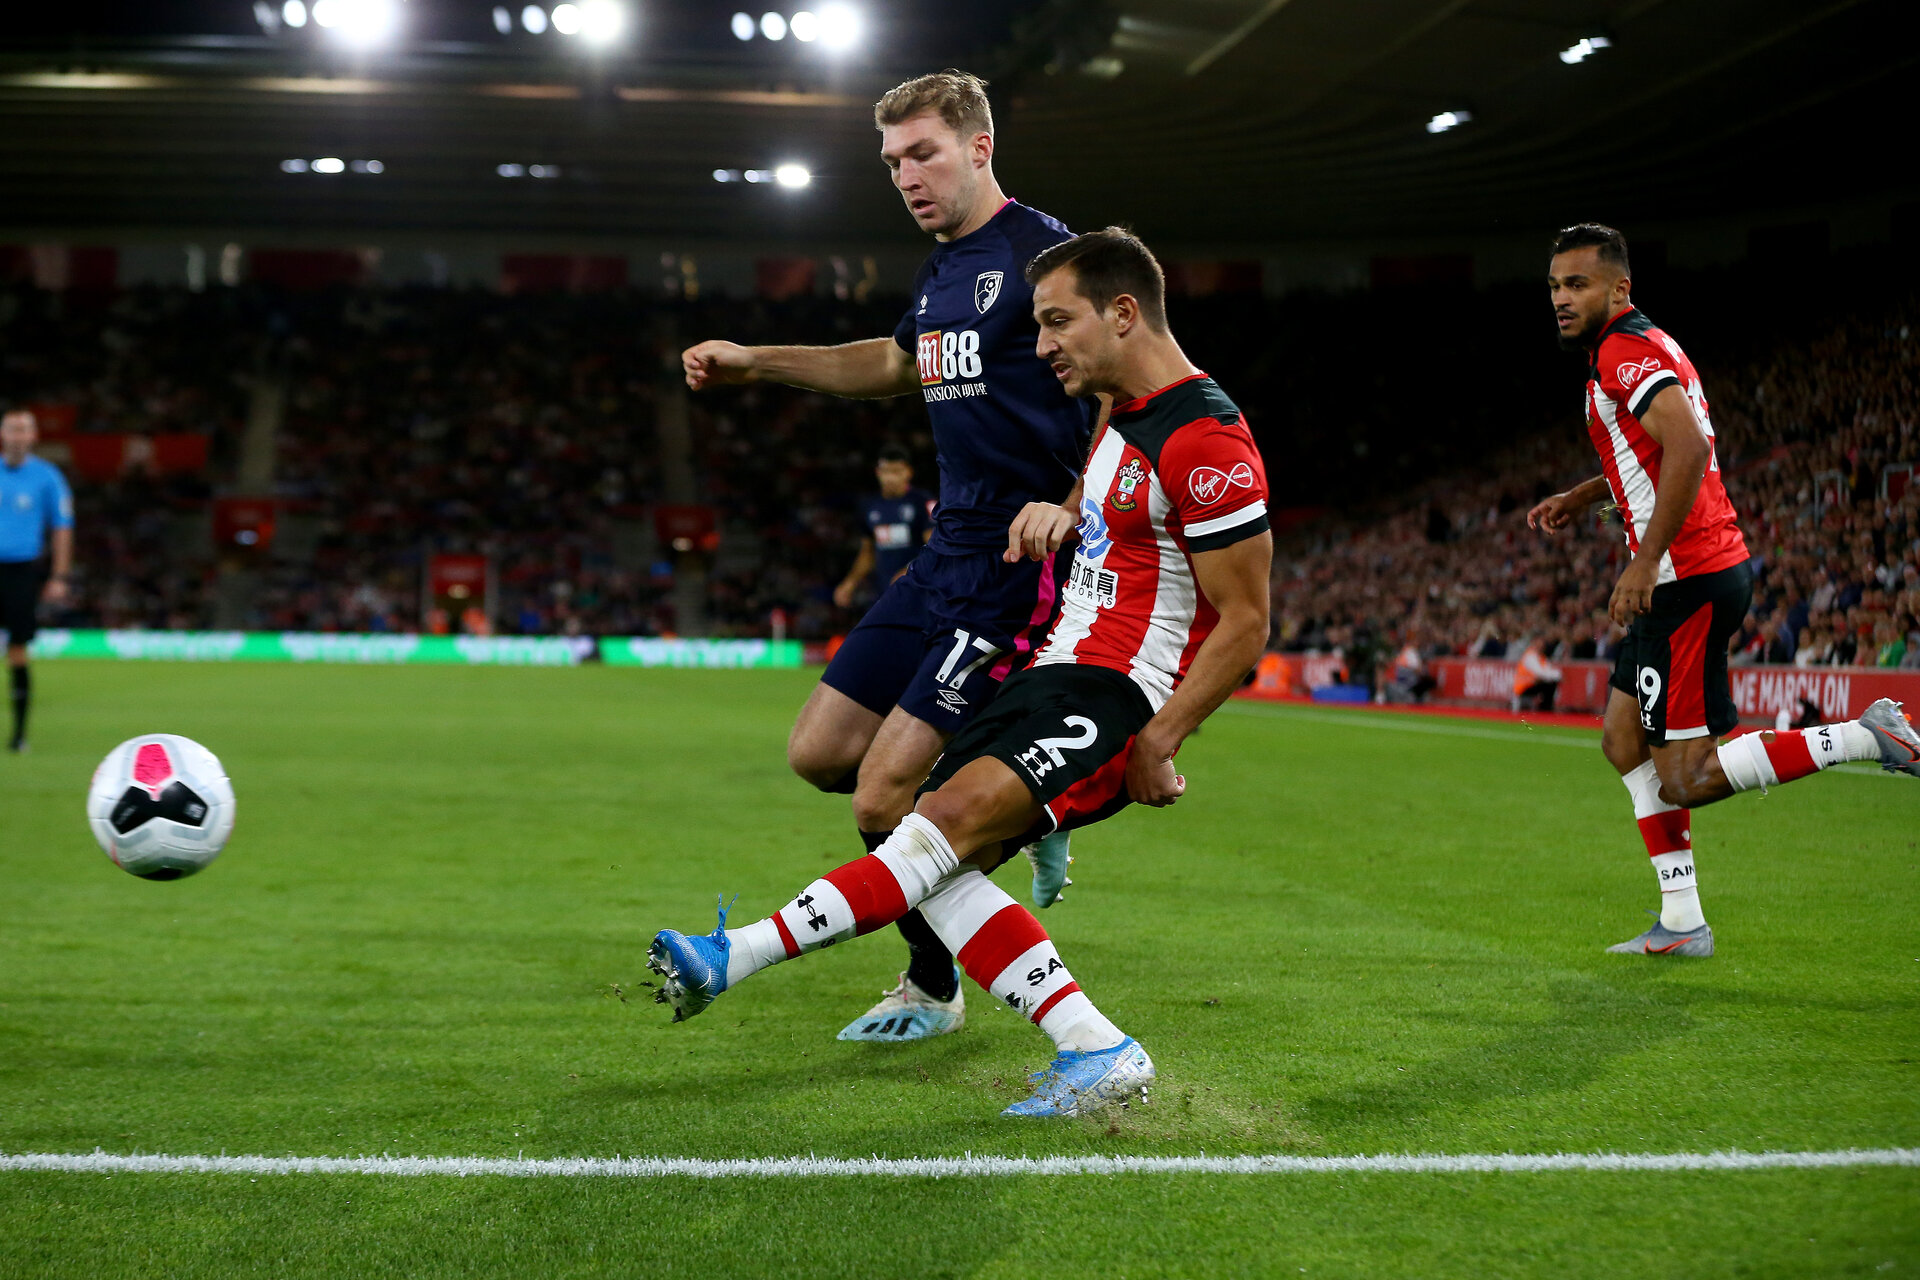 SOUTHAMPTON, ENGLAND - SEPTEMBER 20: Cedric Soares of Southampton gets a cross in during the Premier League match between Southampton FC and AFC Bournemouth  at St Mary's Stadium on September 20, 2019 in Southampton, United Kingdom. (Photo by Matt Watson/Southampton FC via Getty Images)